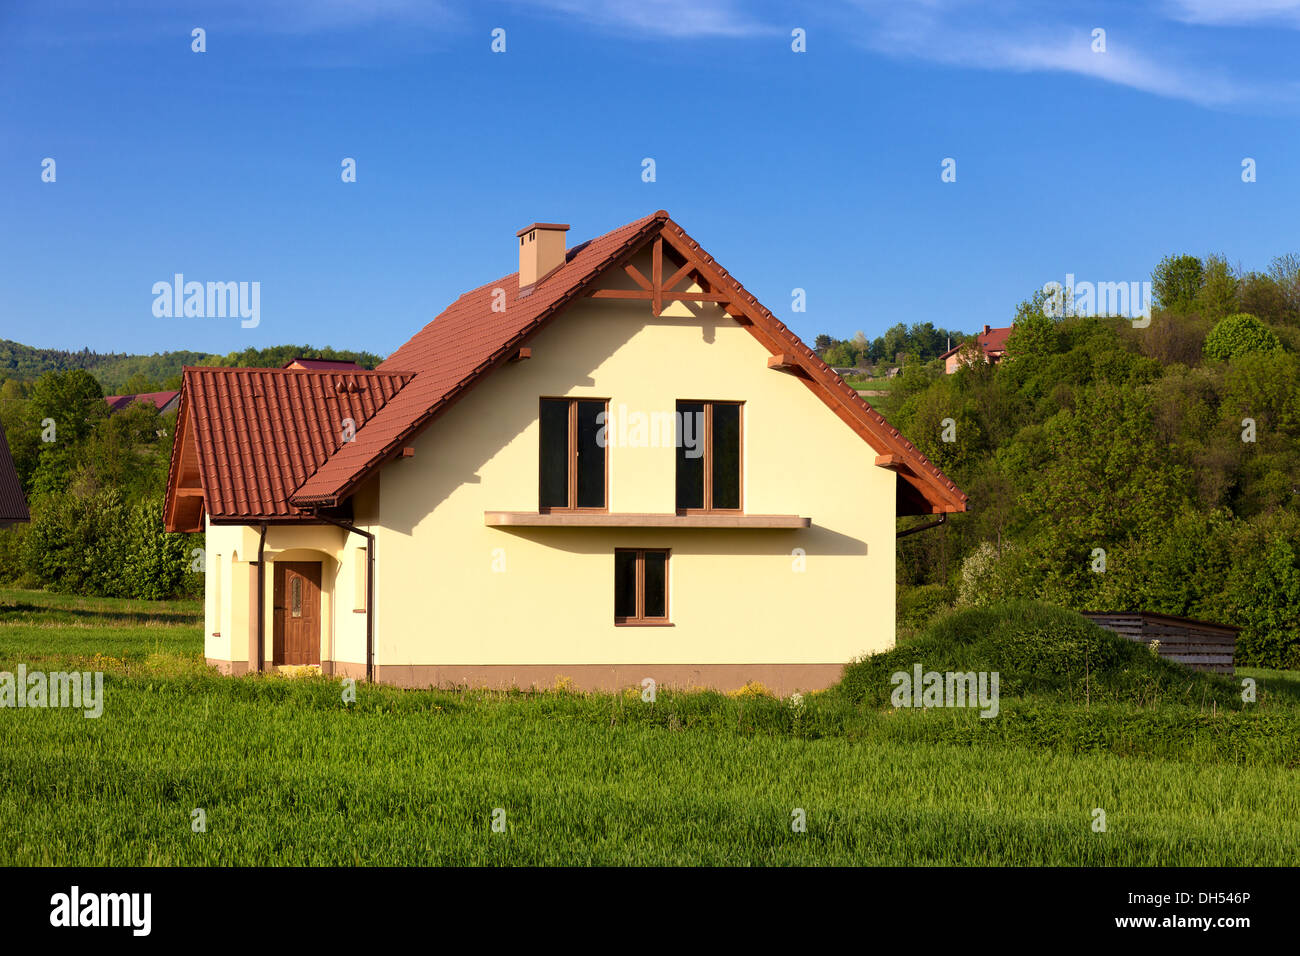 New family house - Stock Image